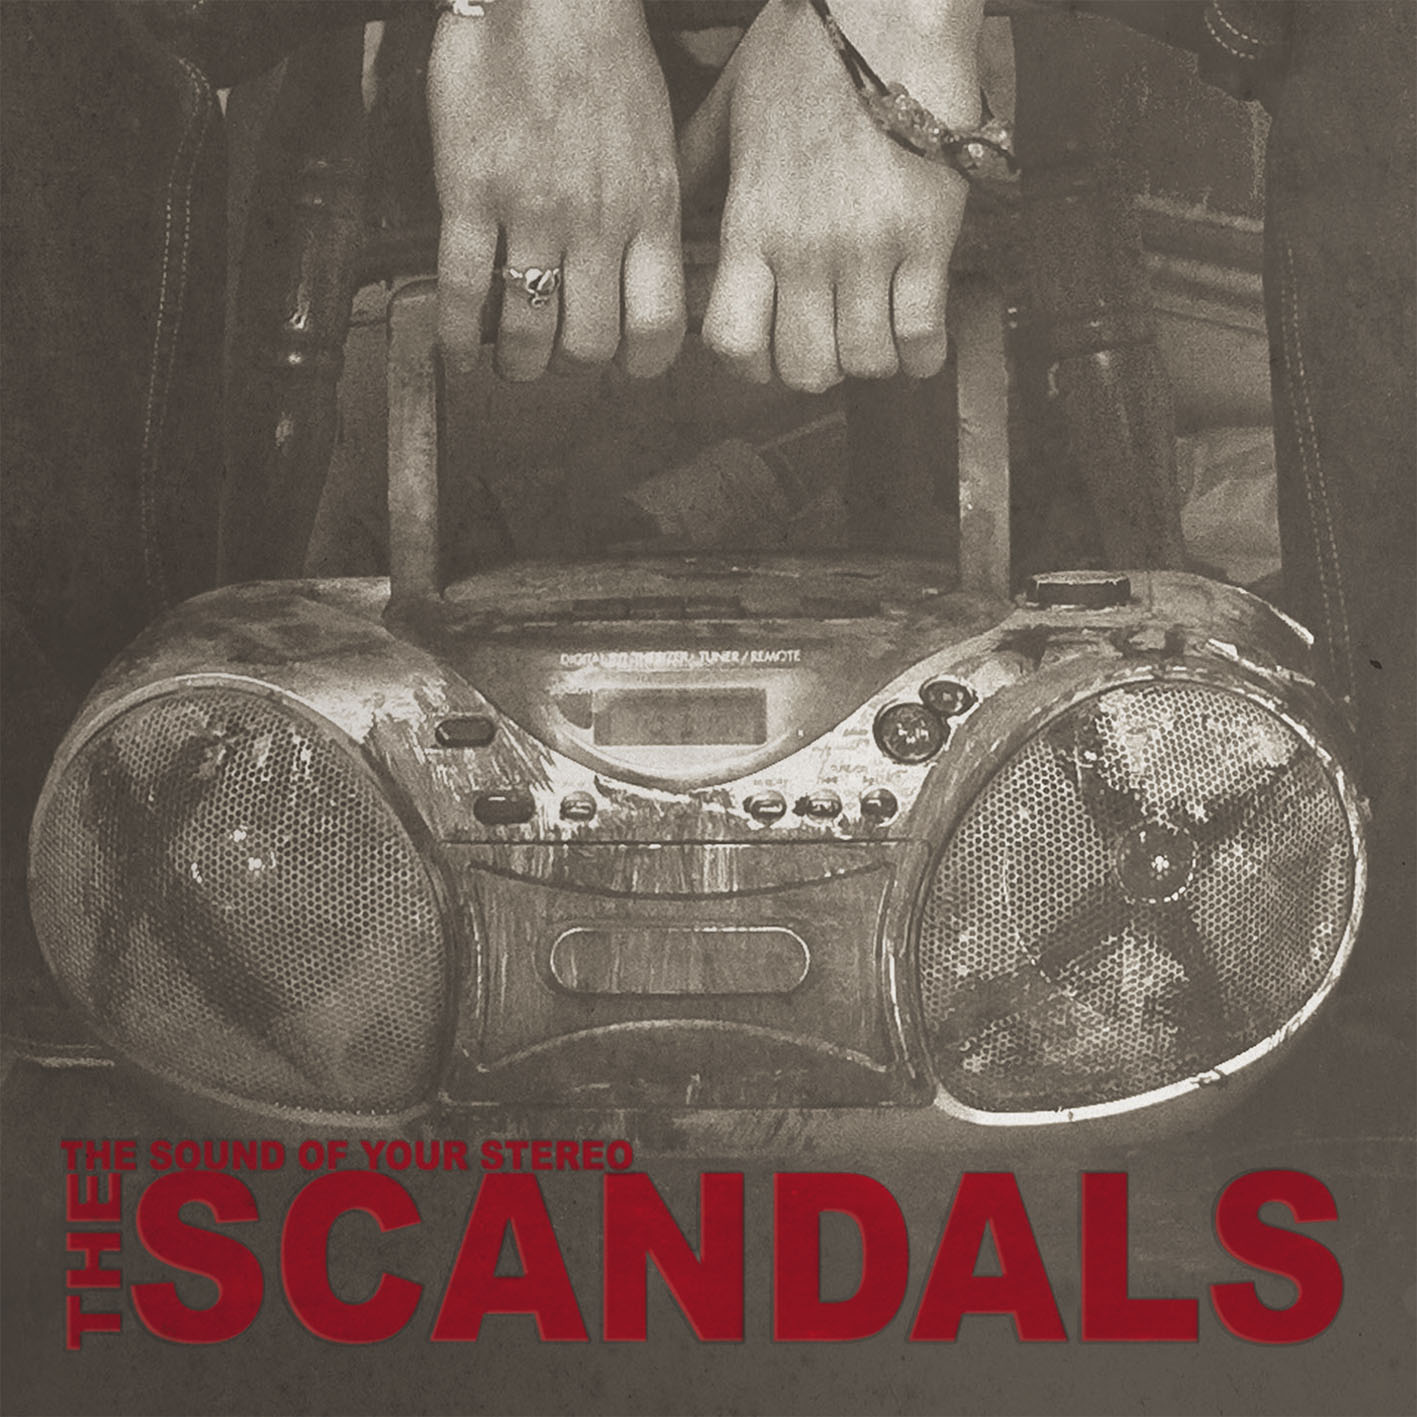 The Scandals - Sound Of Your Stereo